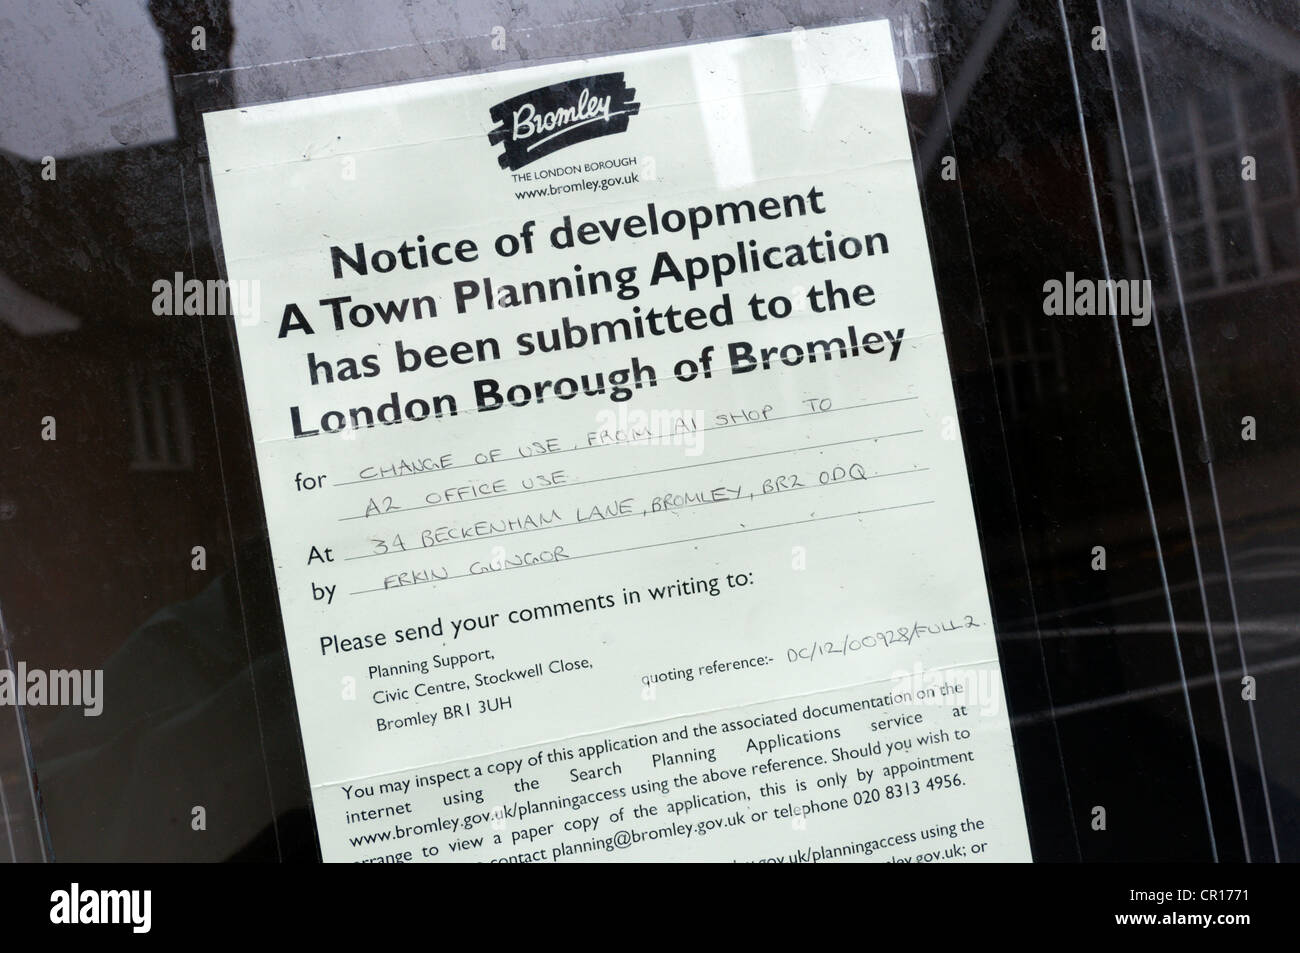 A Town Planning application for change of use from A1 Shop to A2 Office use in the window of an empty shop in Shortlands, - Stock Image